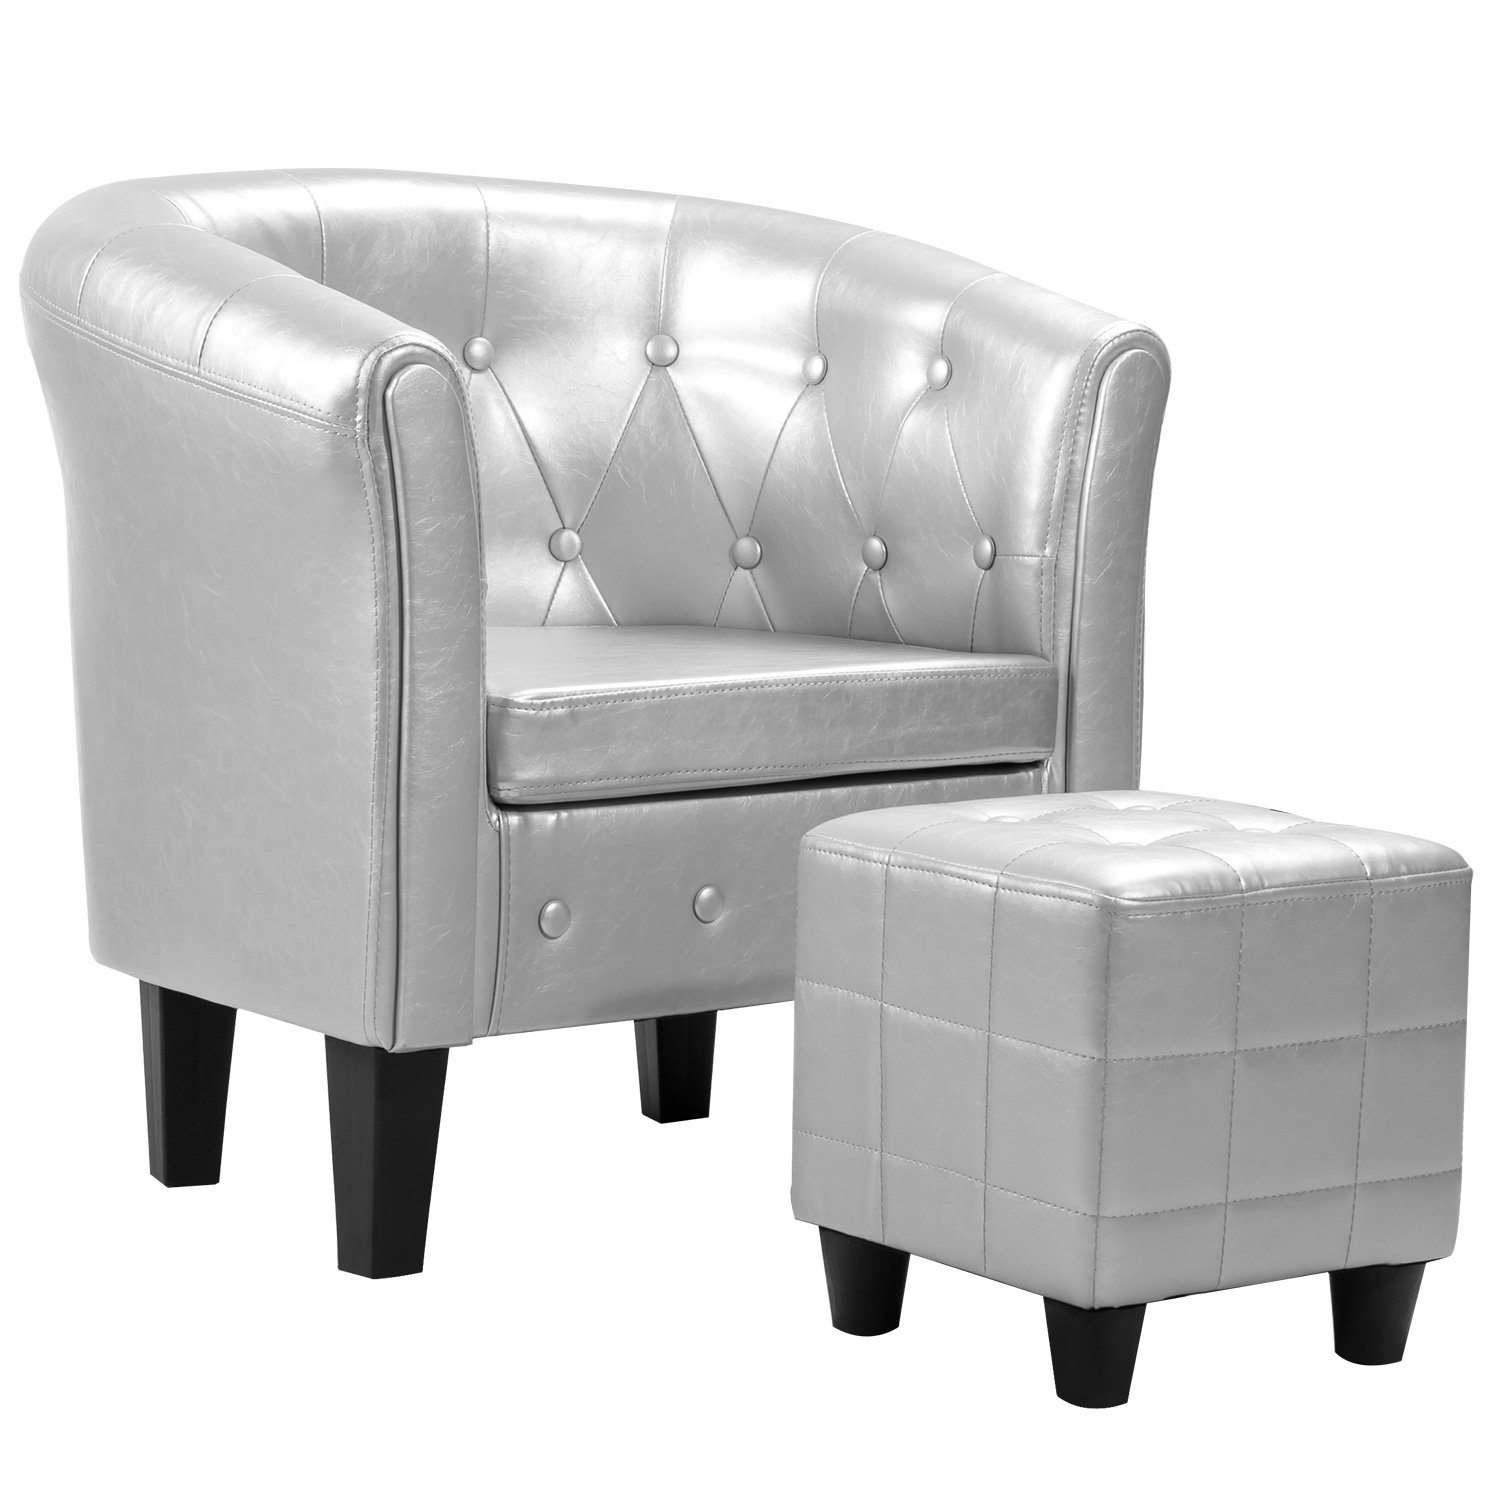 Harper&Bright designs Armchair Modern Upholstered Living Room Club Chair Silver